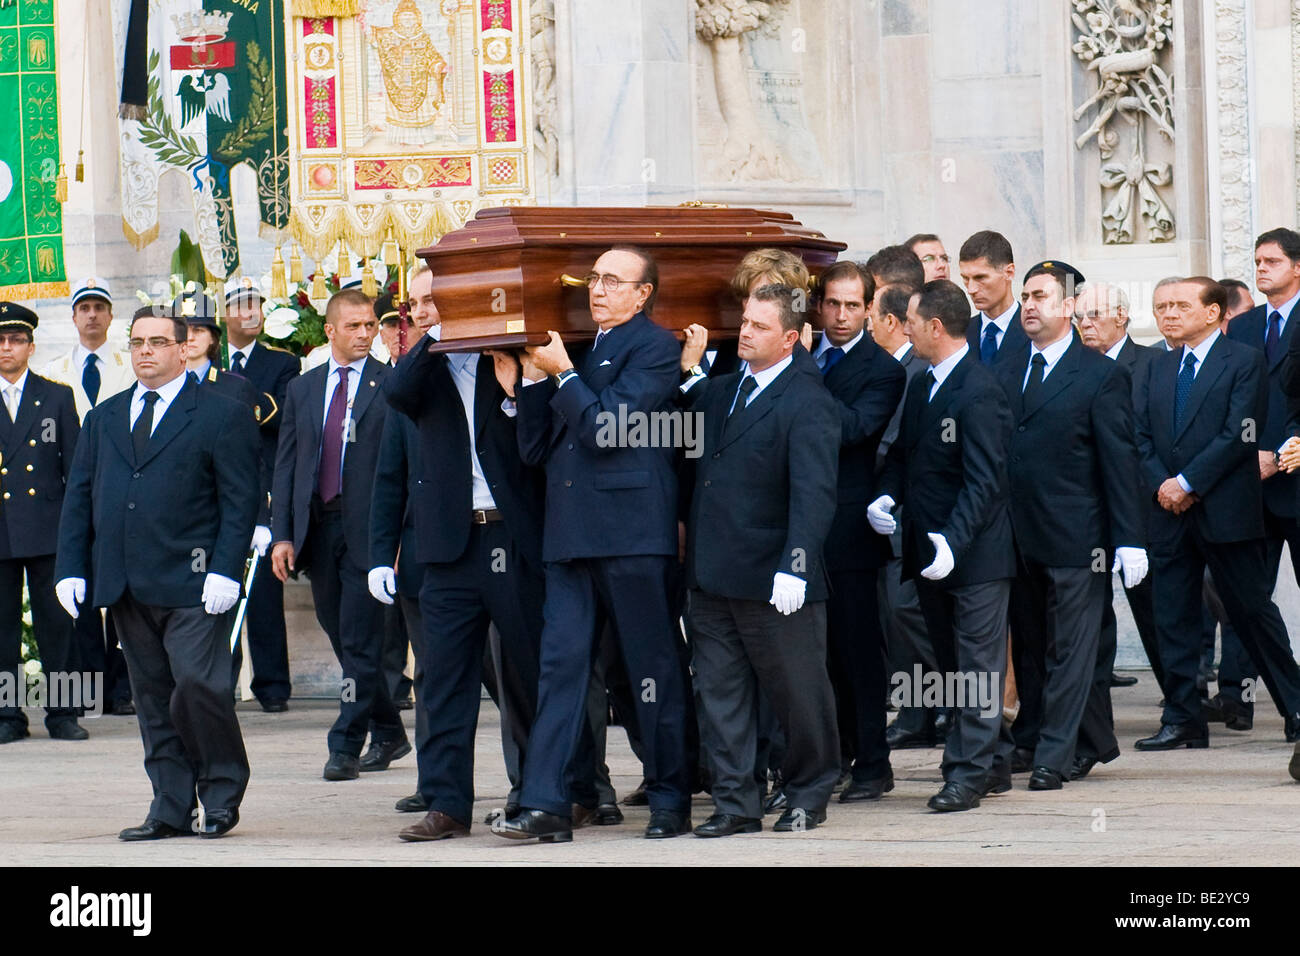 Funeral of Mike Bongiorno, Milan, ITALY, 12 september 2009 - Stock Image